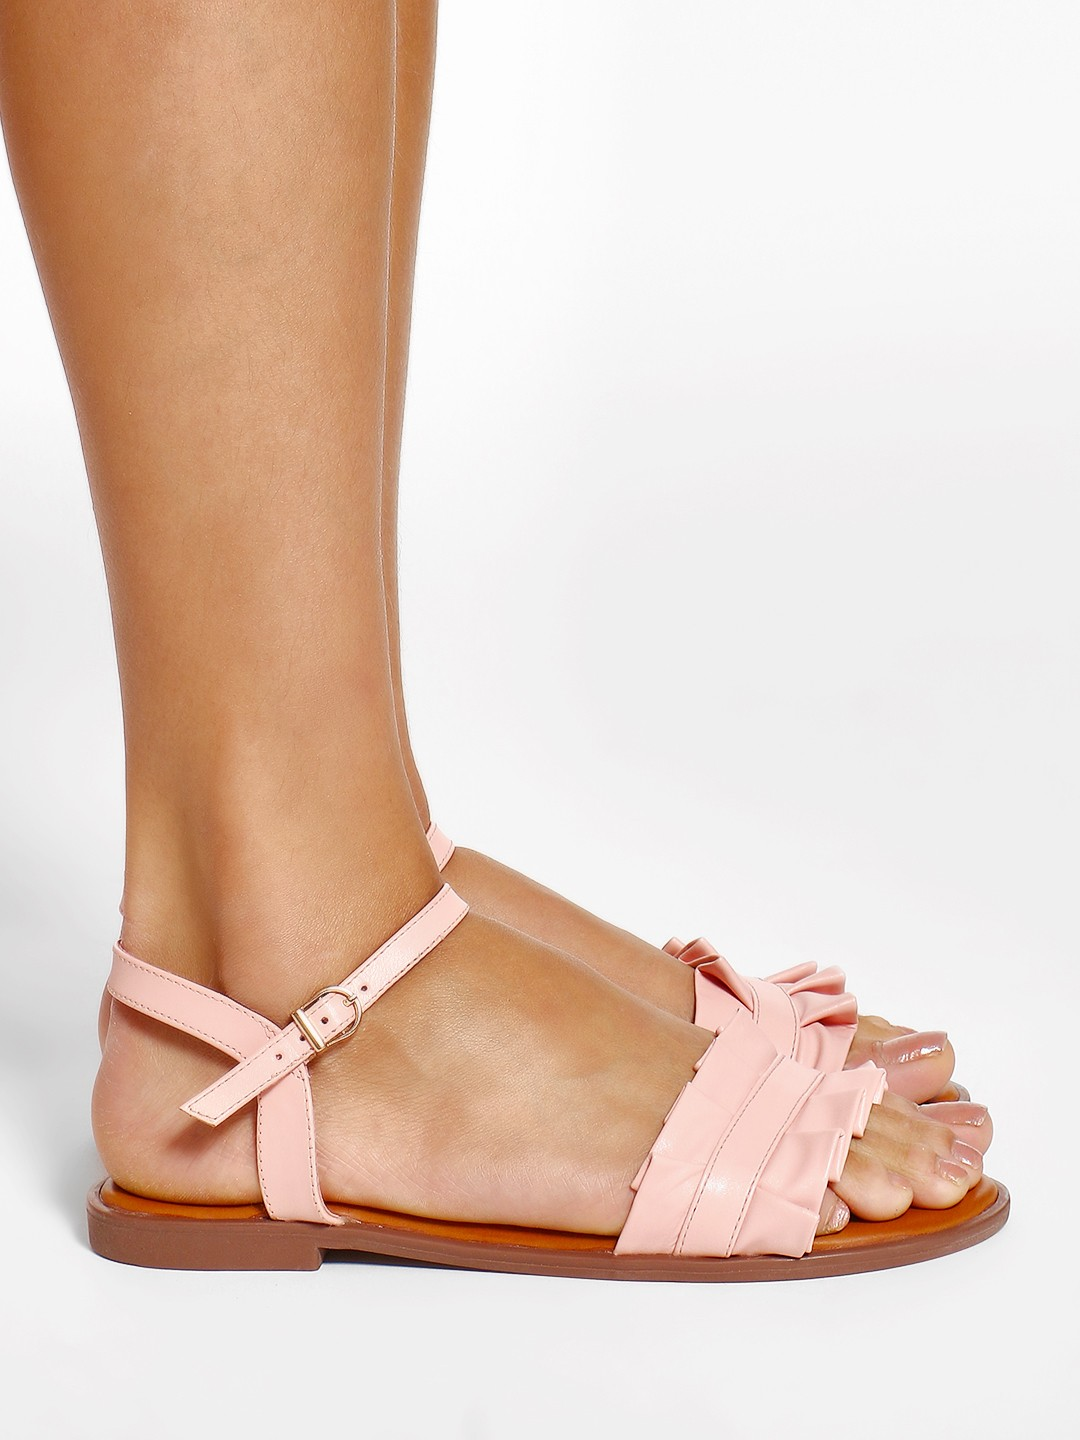 Buy Wet Blue Pink Ruffle Strap Flat Sandals For Girls